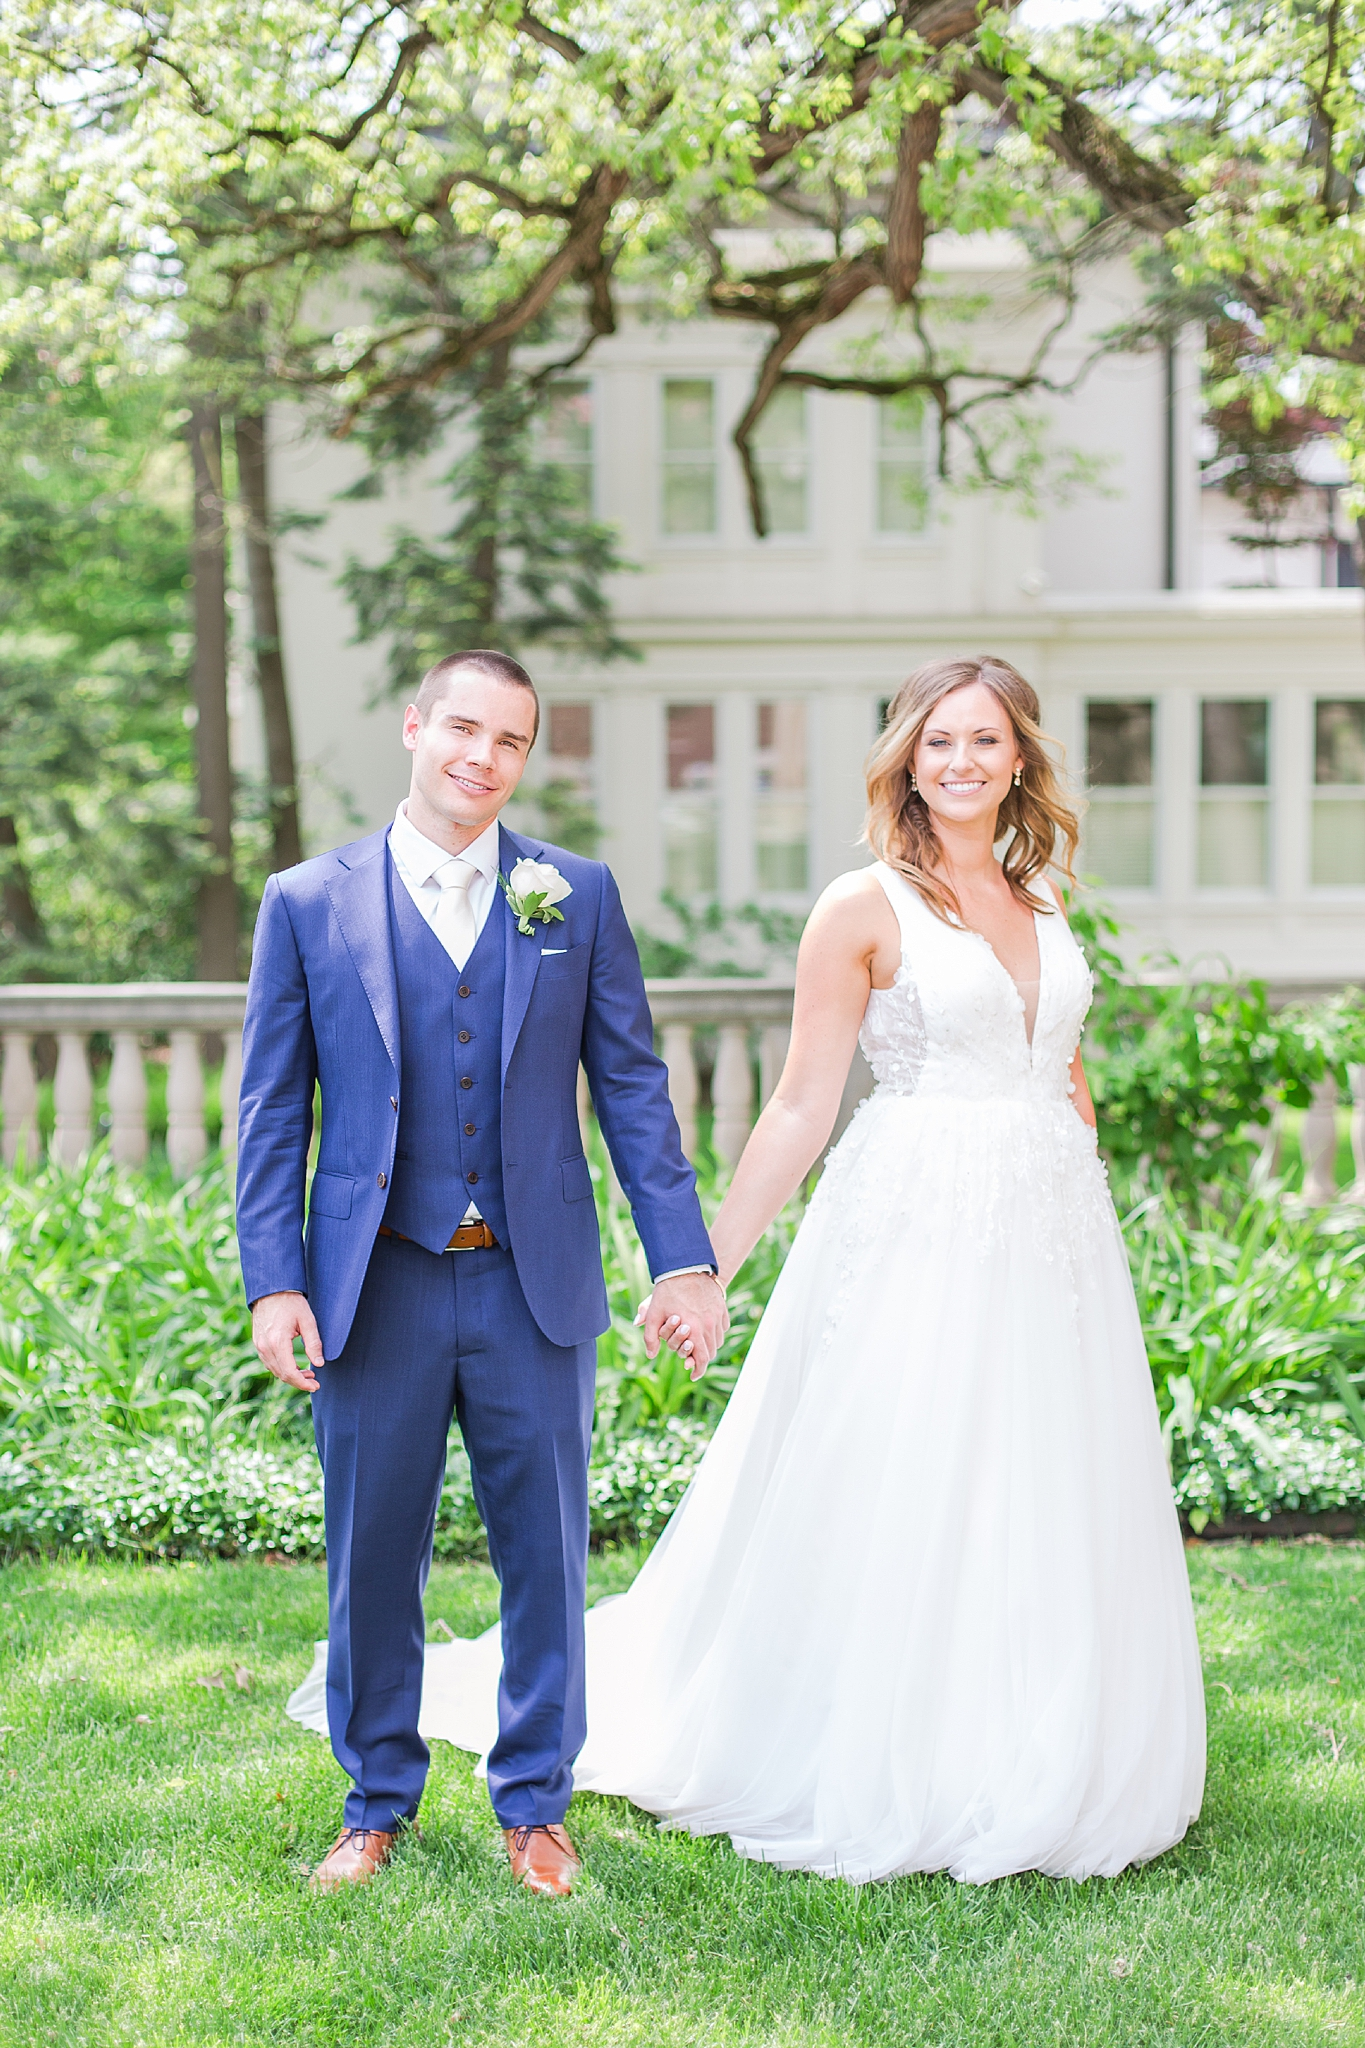 joyful-romantic-modern-laid-back-wedding-photography-in-detroit-ann-arbor-northern-mi-and-chicago-by-courtney-carolyn-photography_0037.jpg